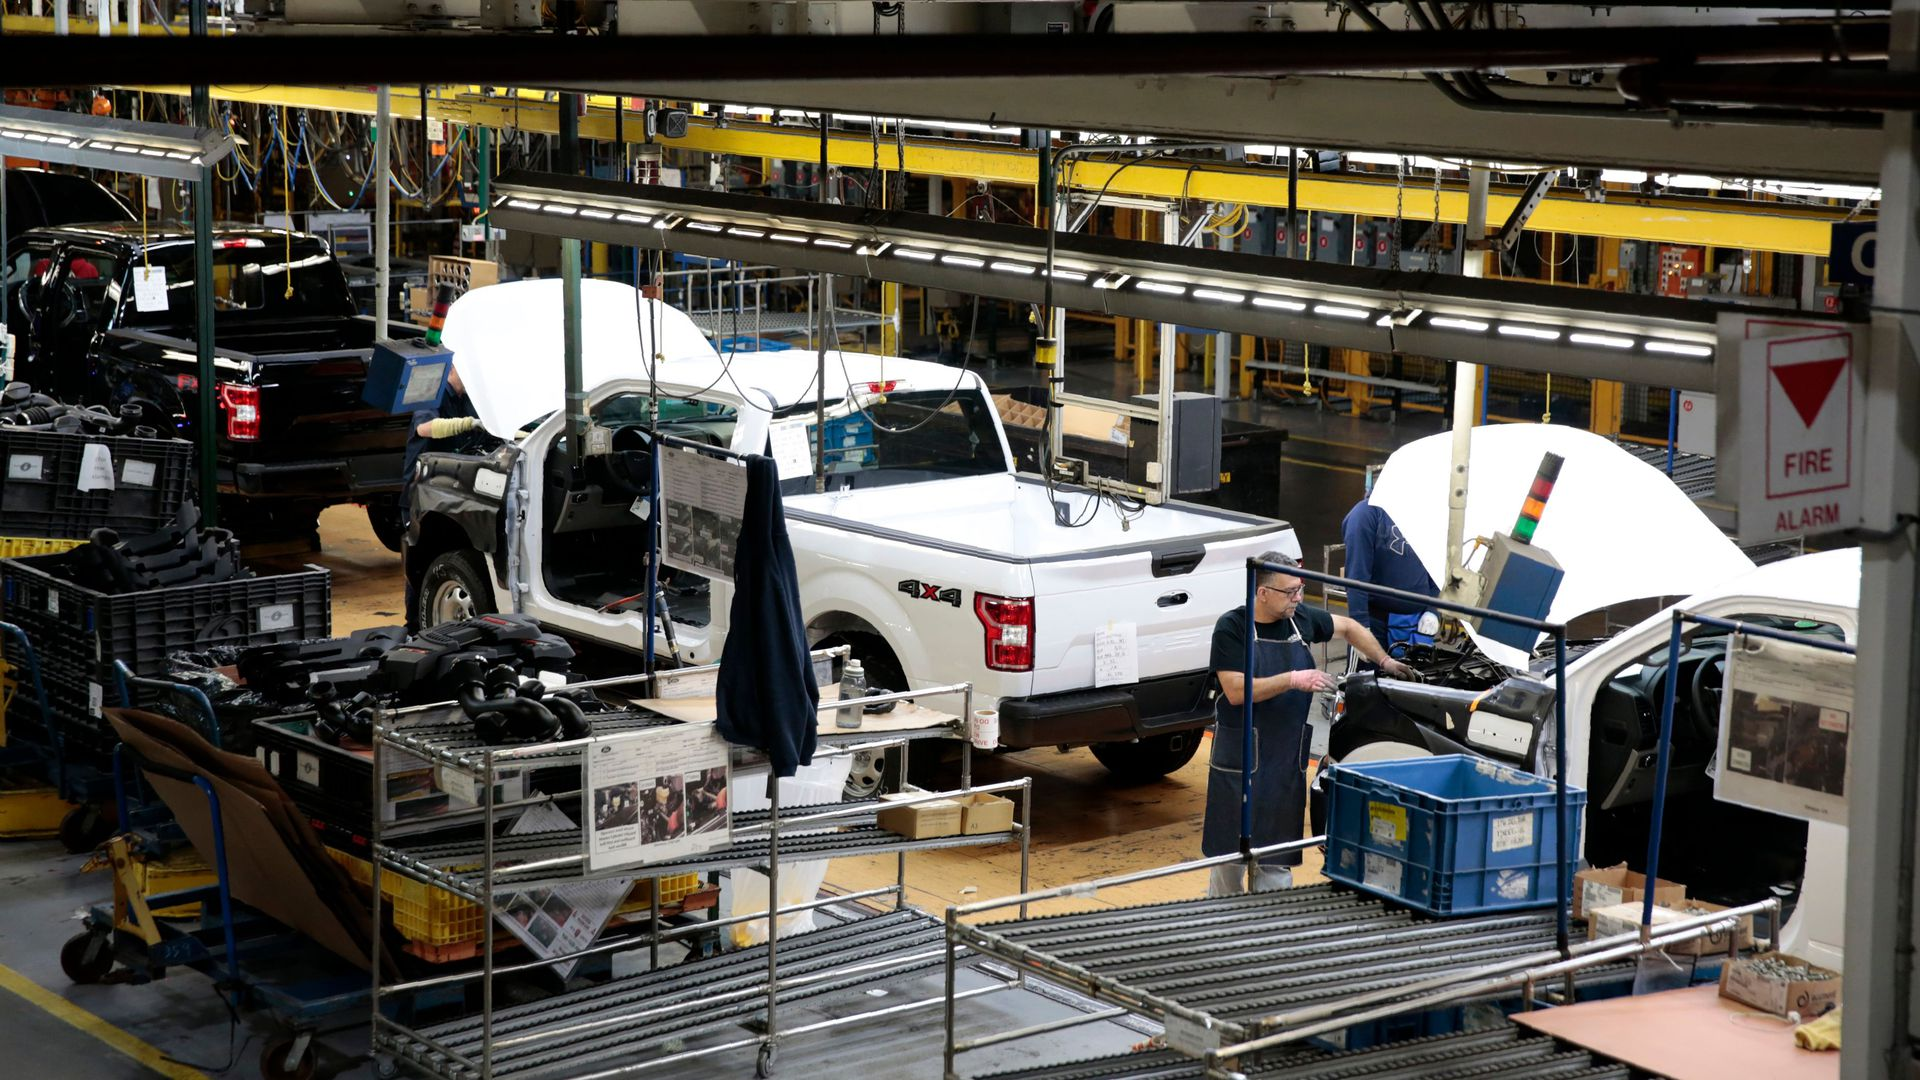 ford trucks on an assembly line in a manufacturing plant